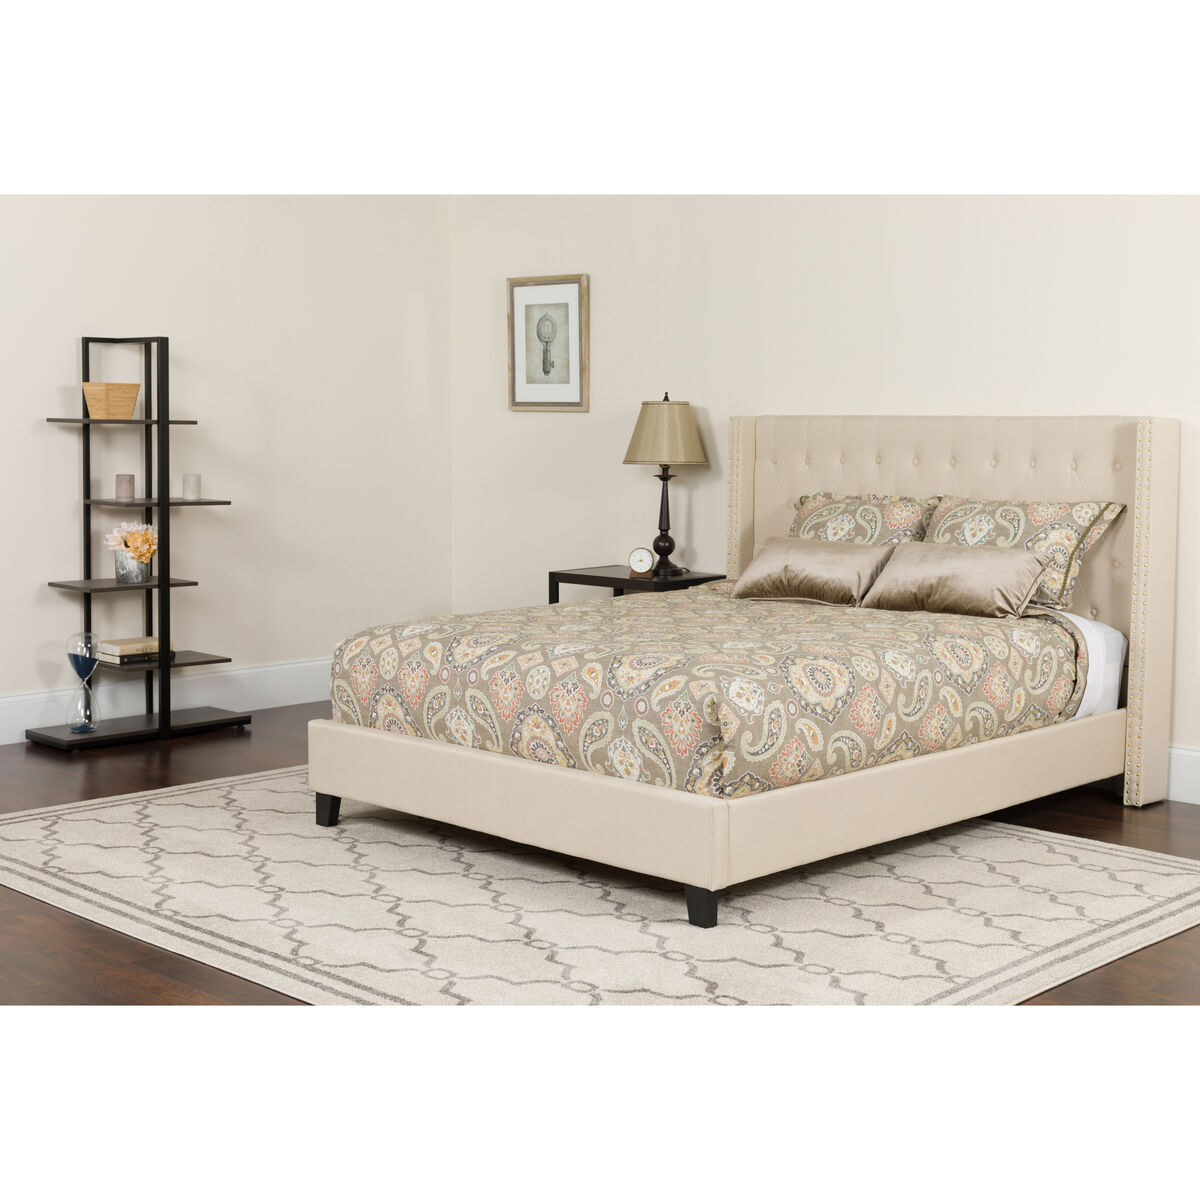 Our Riverdale Queen Size Tufted Upholstered Platform Bed In Beige Fabric Is On Now